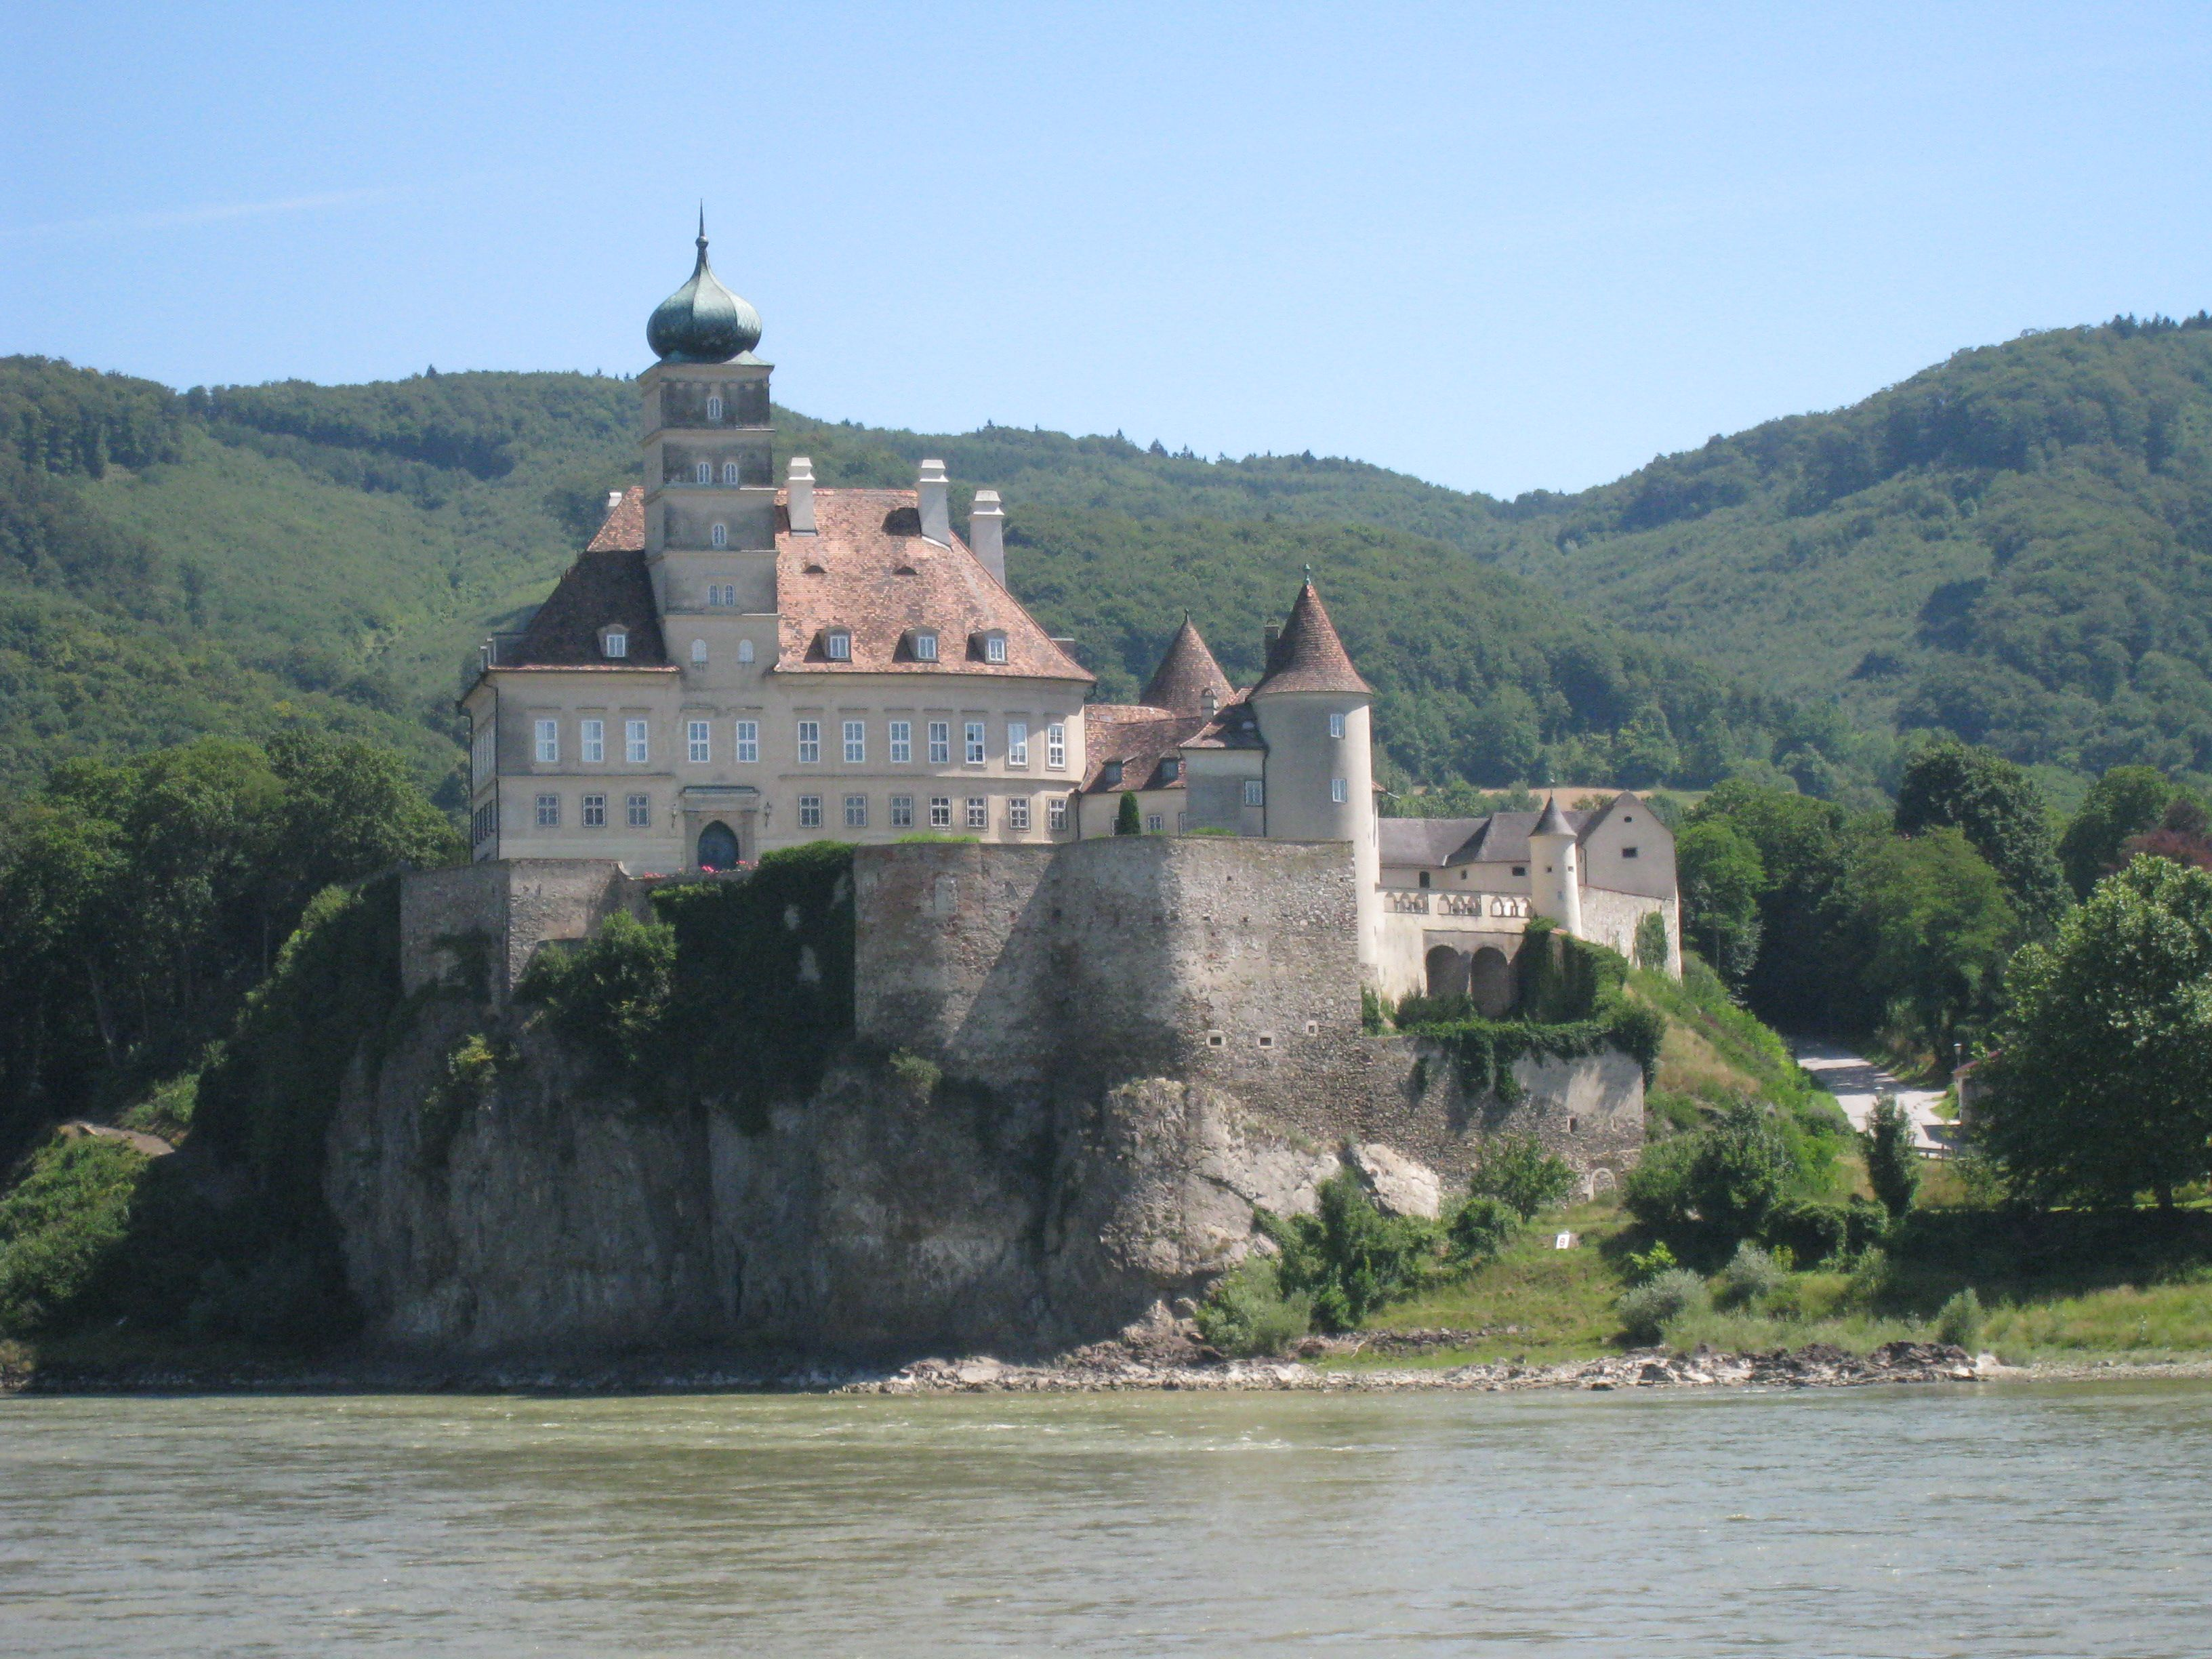 Wachau Valley, Austria cruising past all the beautiful